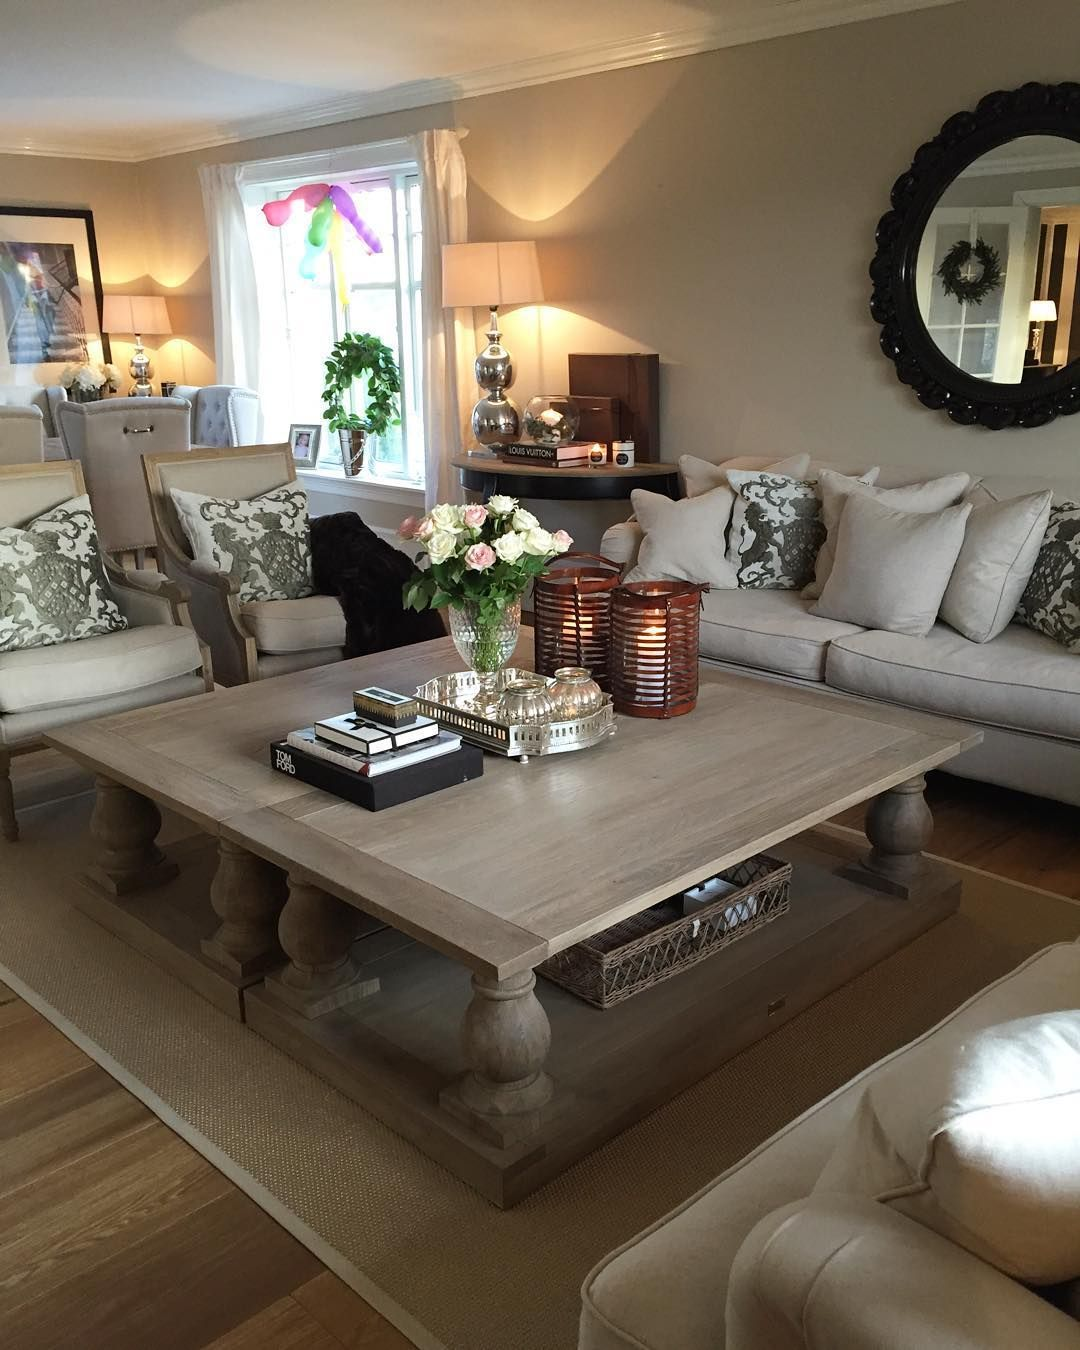 Home decor ideas philippines enough images when brown furniture interior design living room in also rh pinterest